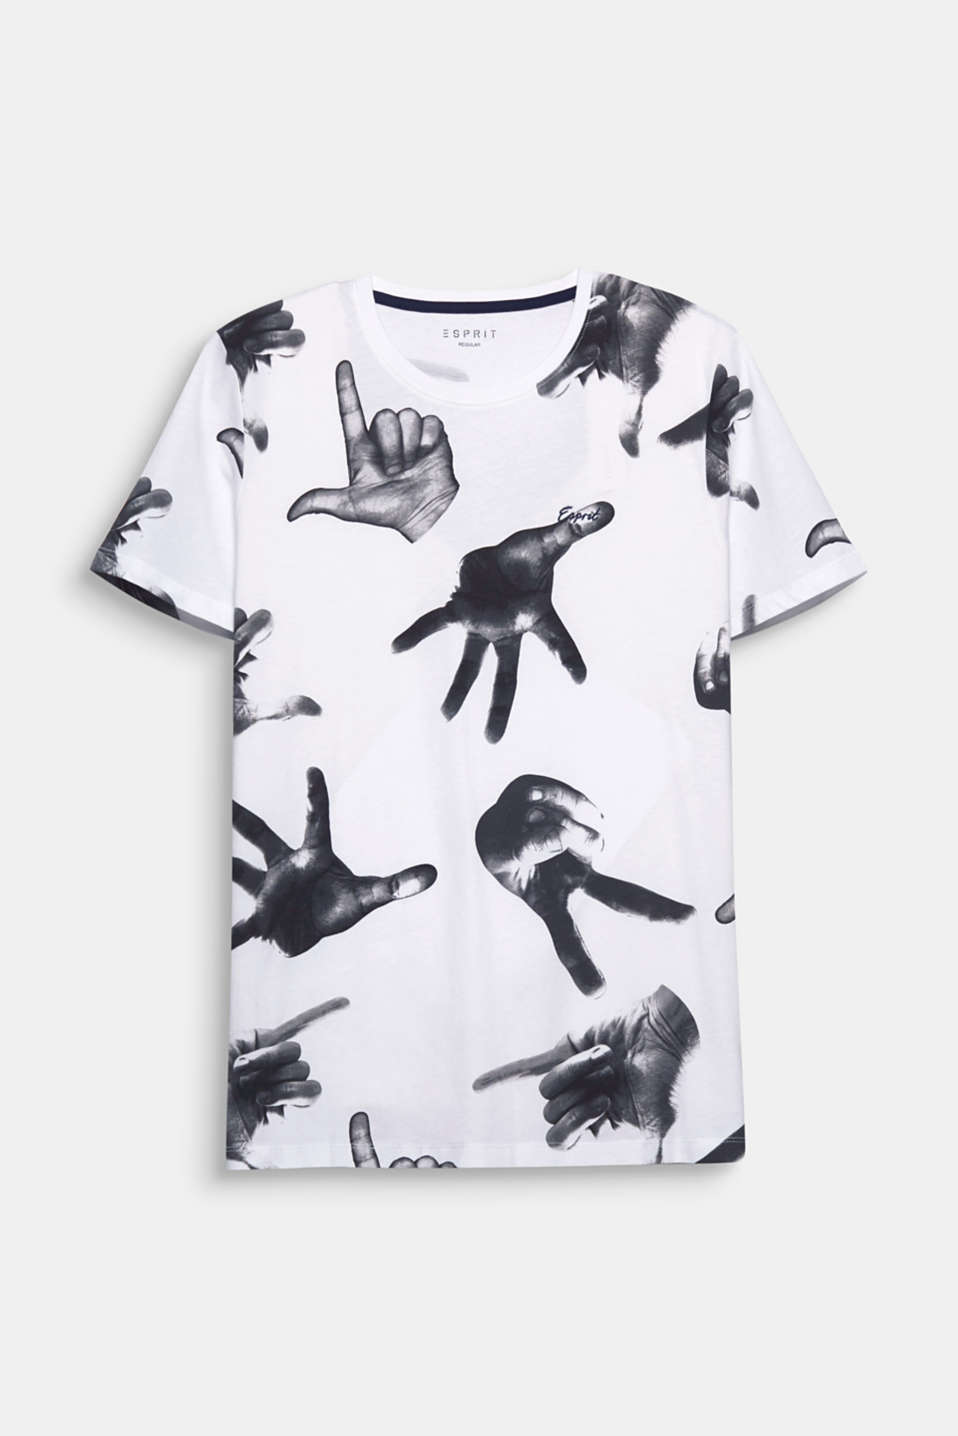 Hands up! The black and white photo print makes this t-shirt a cool head-turner.